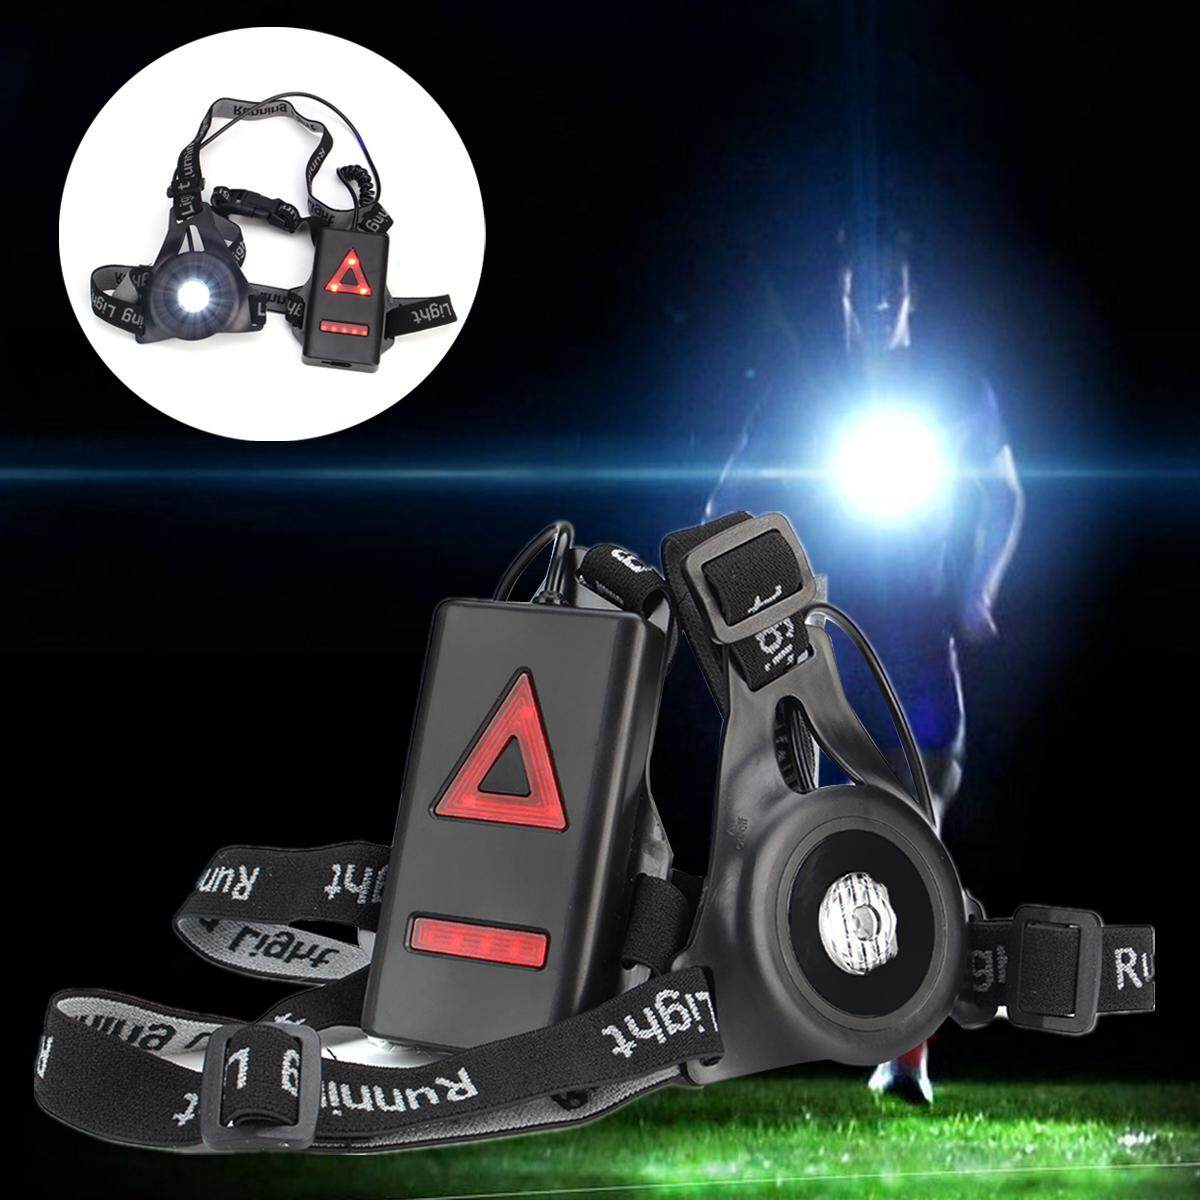 Night Safety Outdoor Running Jogging Light Chest & Back LED Warning Lamp Cycling - intl Philippines